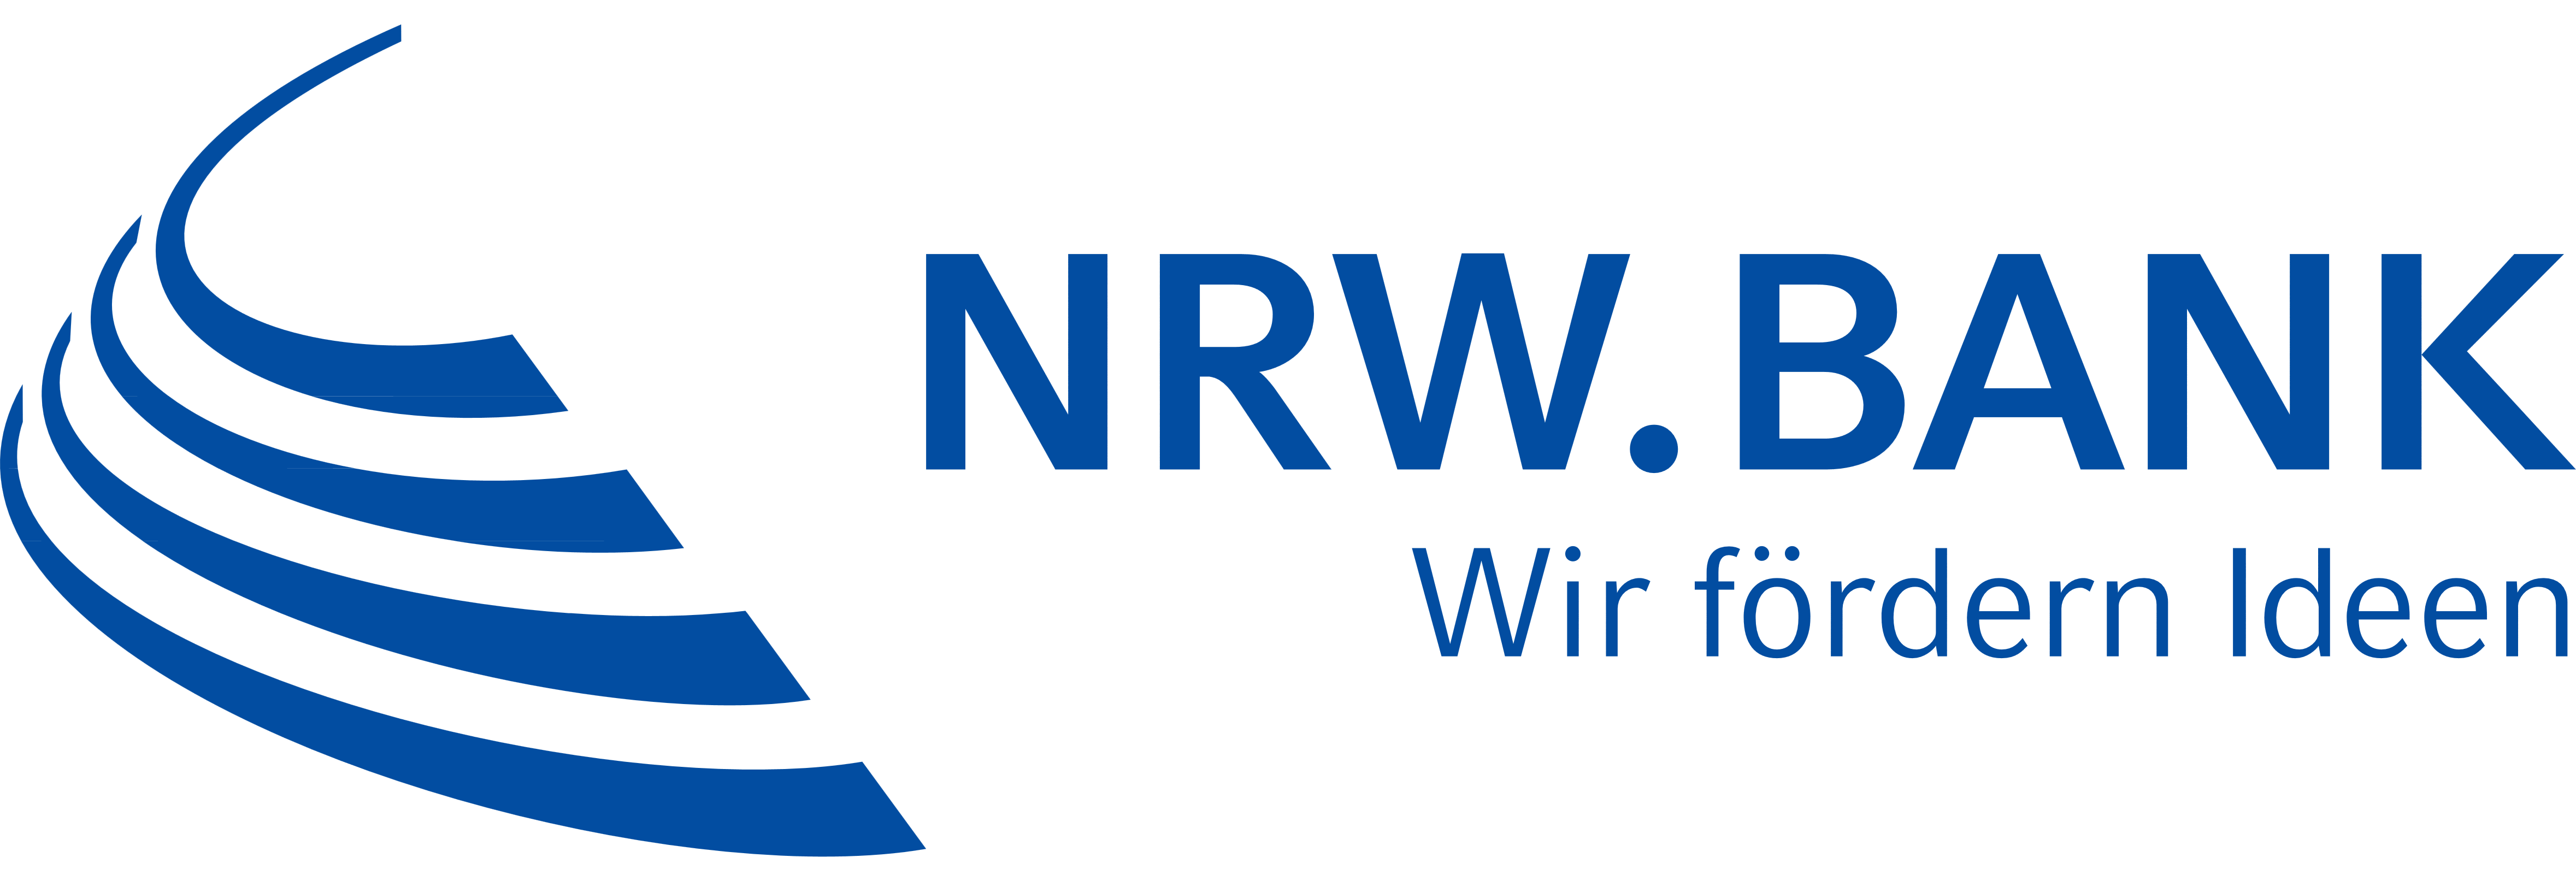 Image result for nrw bank